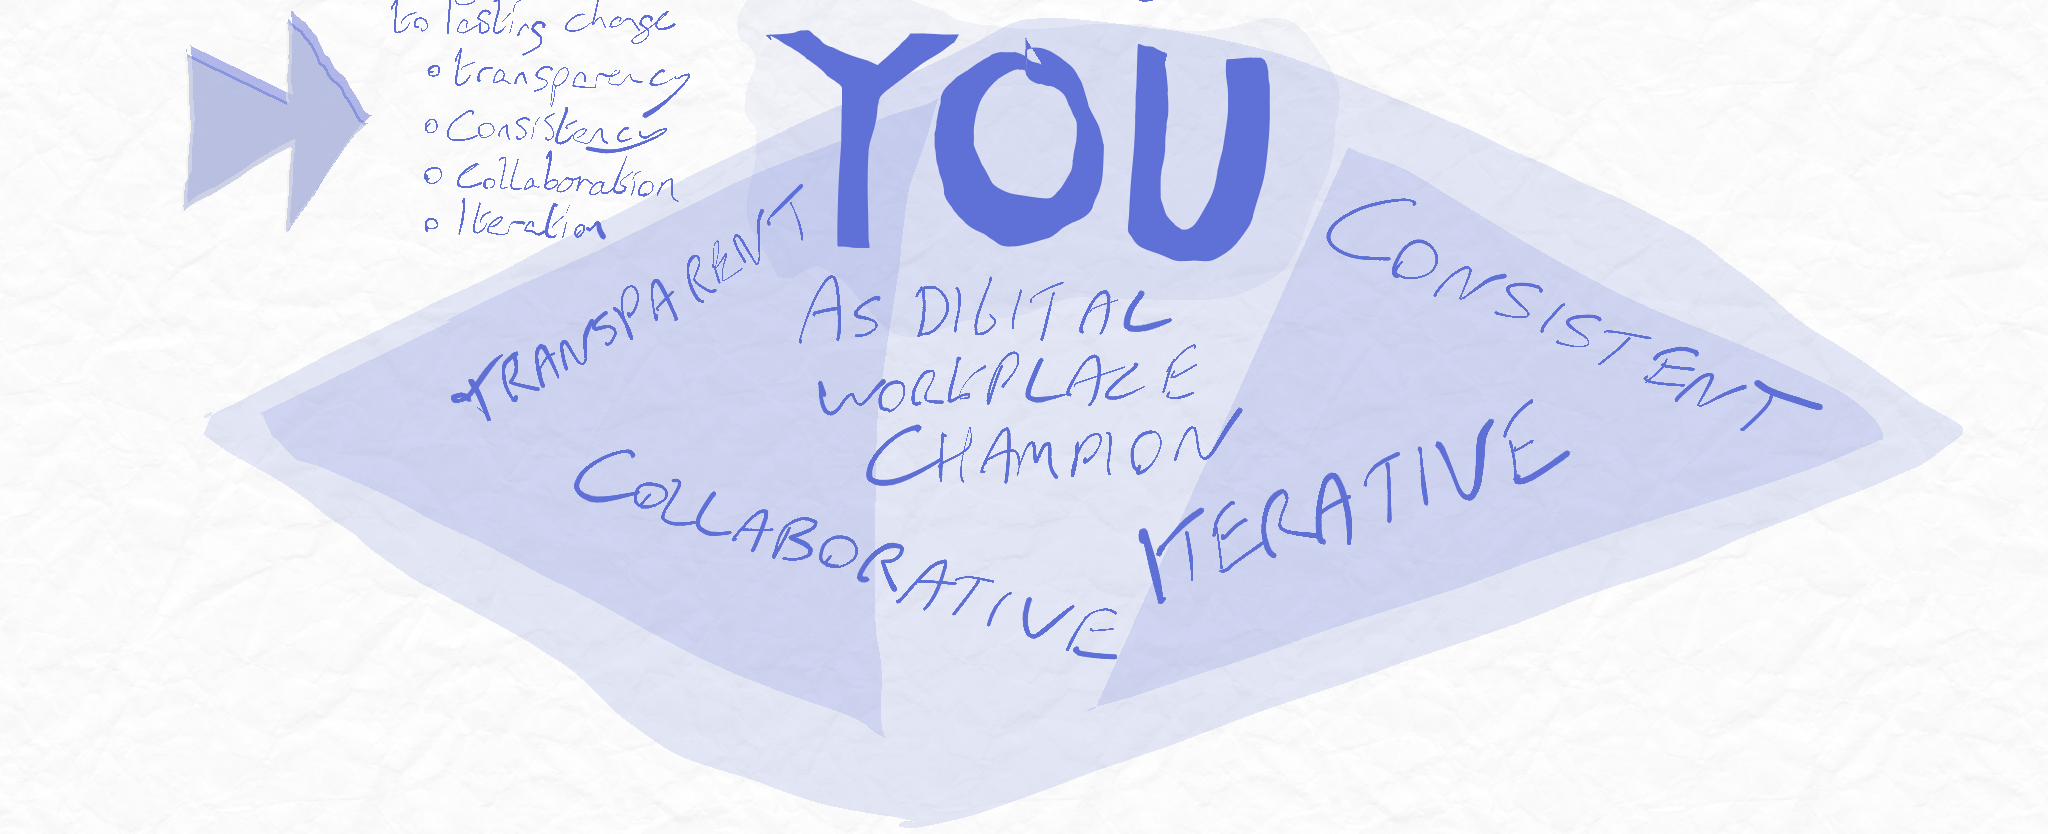 You as digital workplace champion: Transparent, consistent, collaborative, iterative